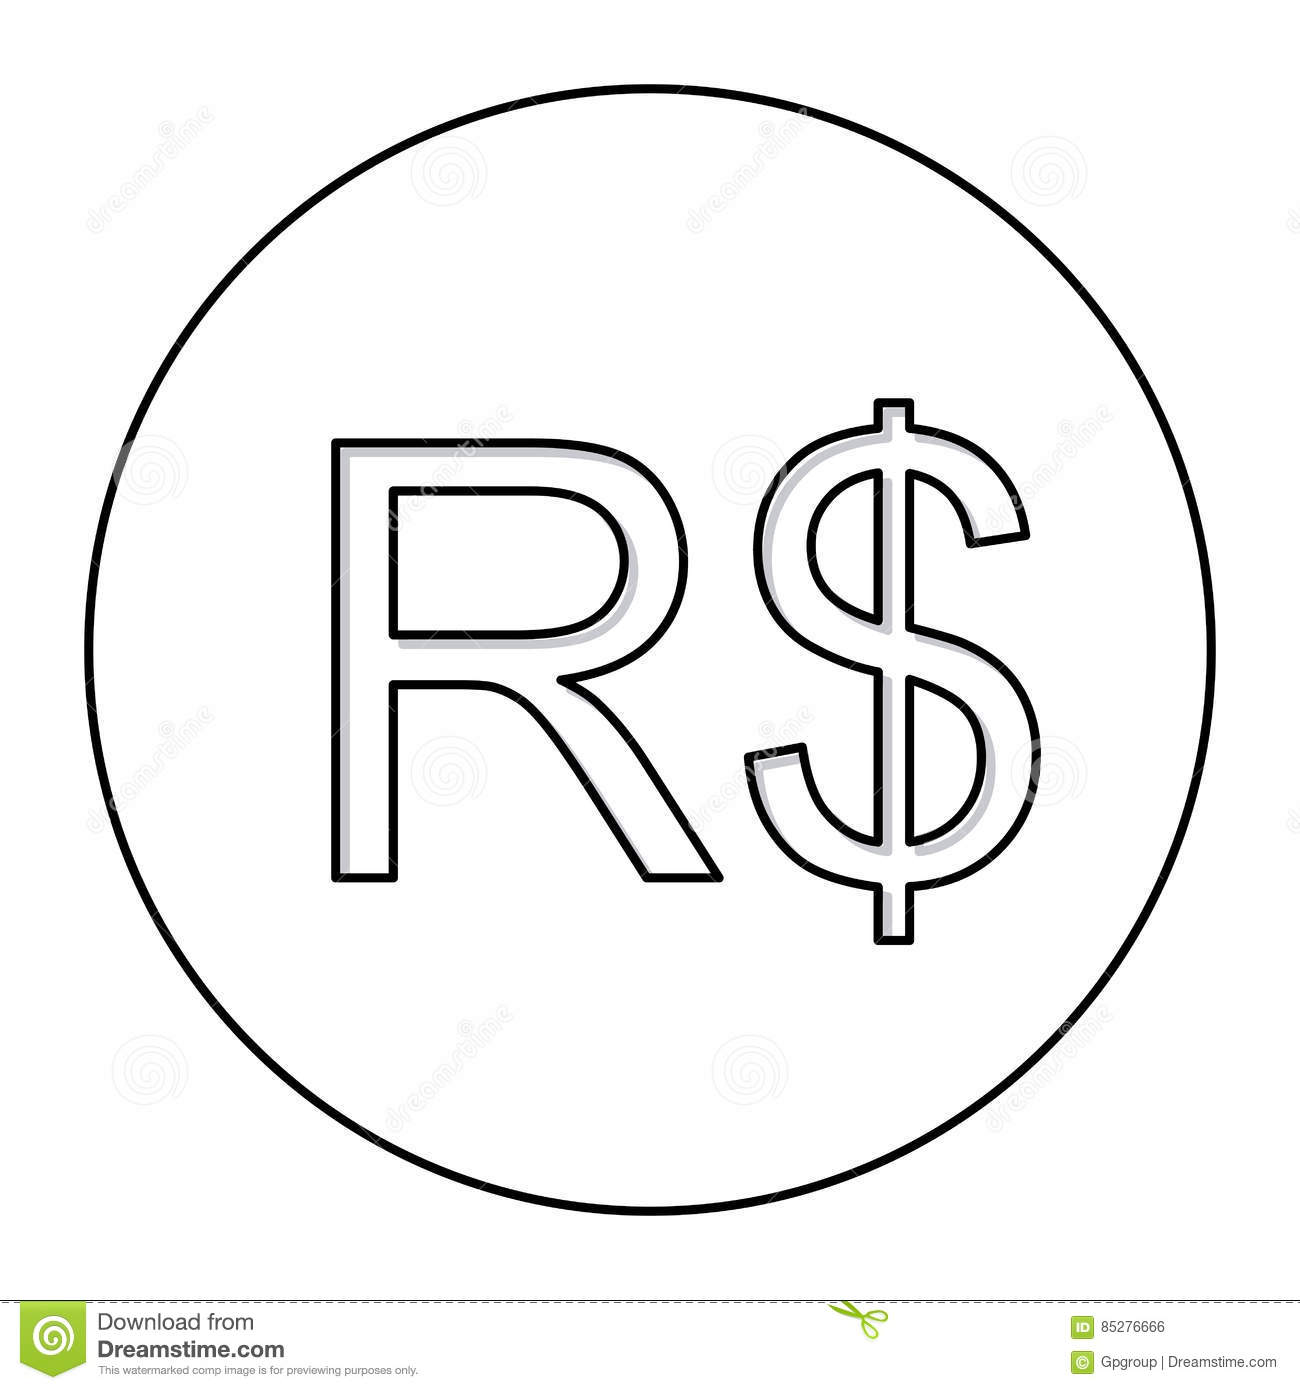 Monochrome contour with currency symbol of brazilian real in circle monochrome contour with currency symbol of brazilian real in circle biocorpaavc Image collections